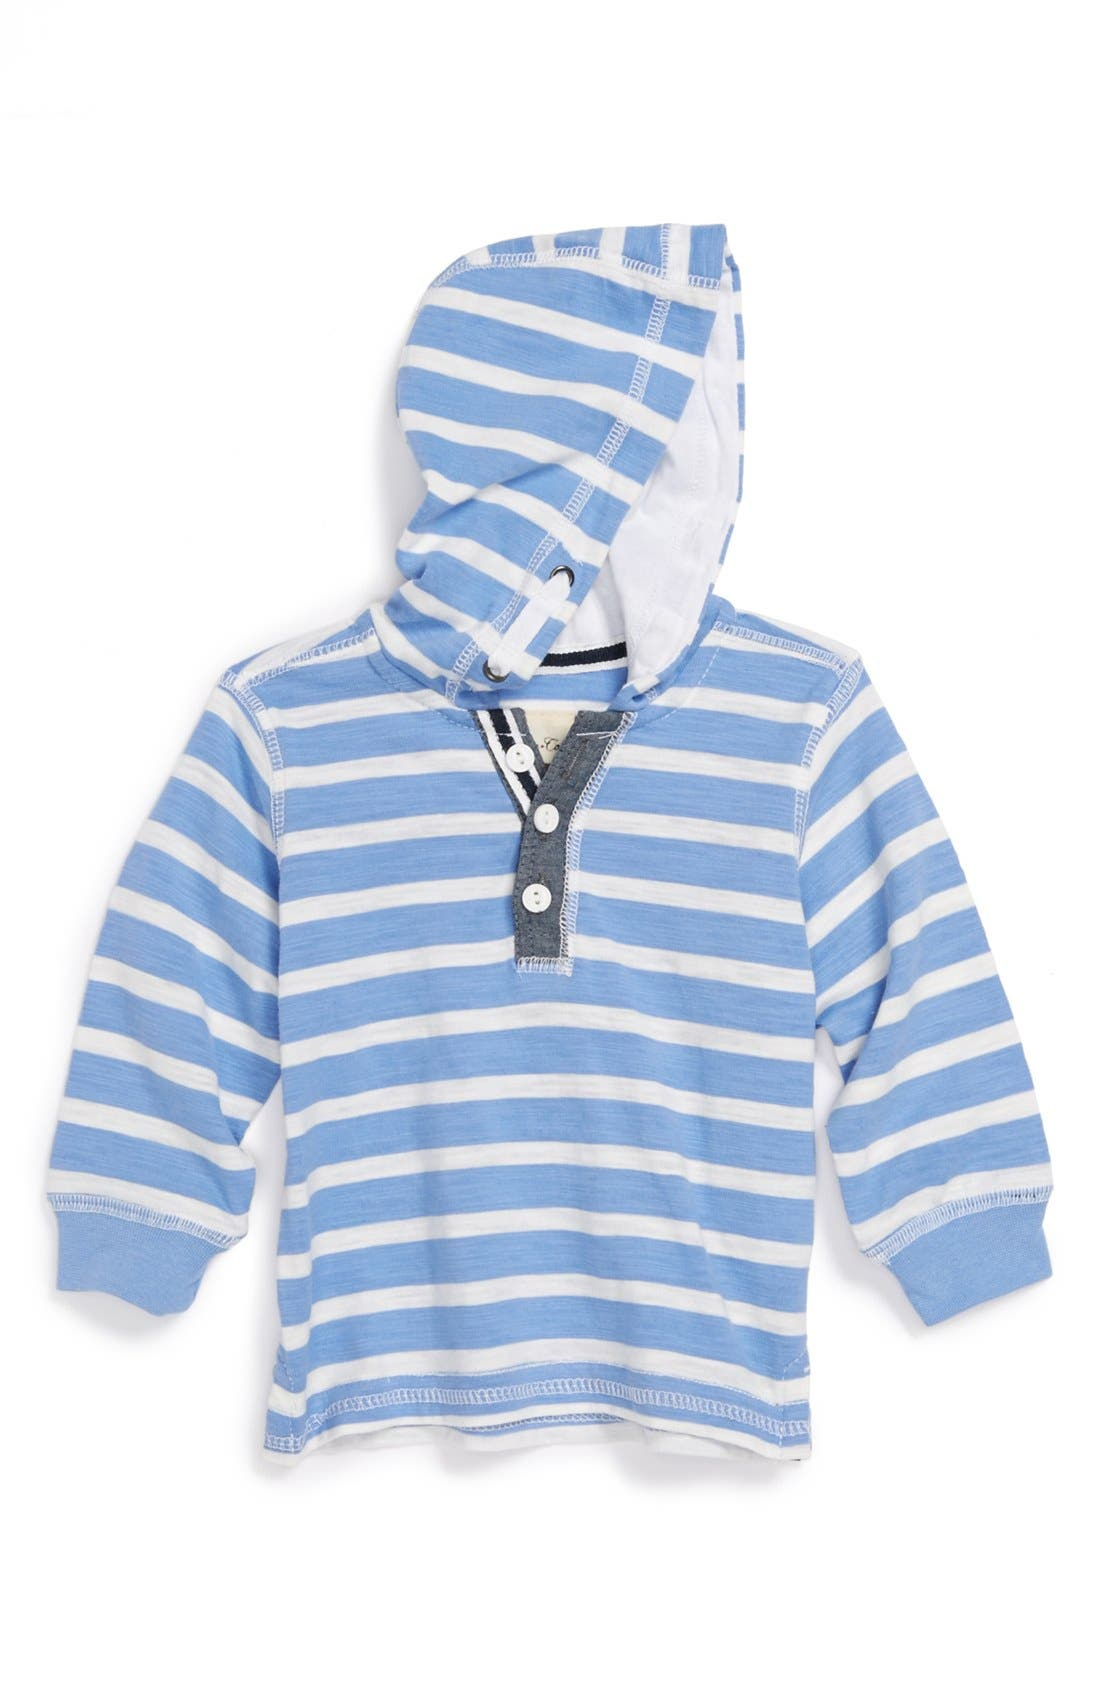 Main Image - Sovereign Code 'Anarchy' Chambray Trimmed Hoodie (Toddler Boys)